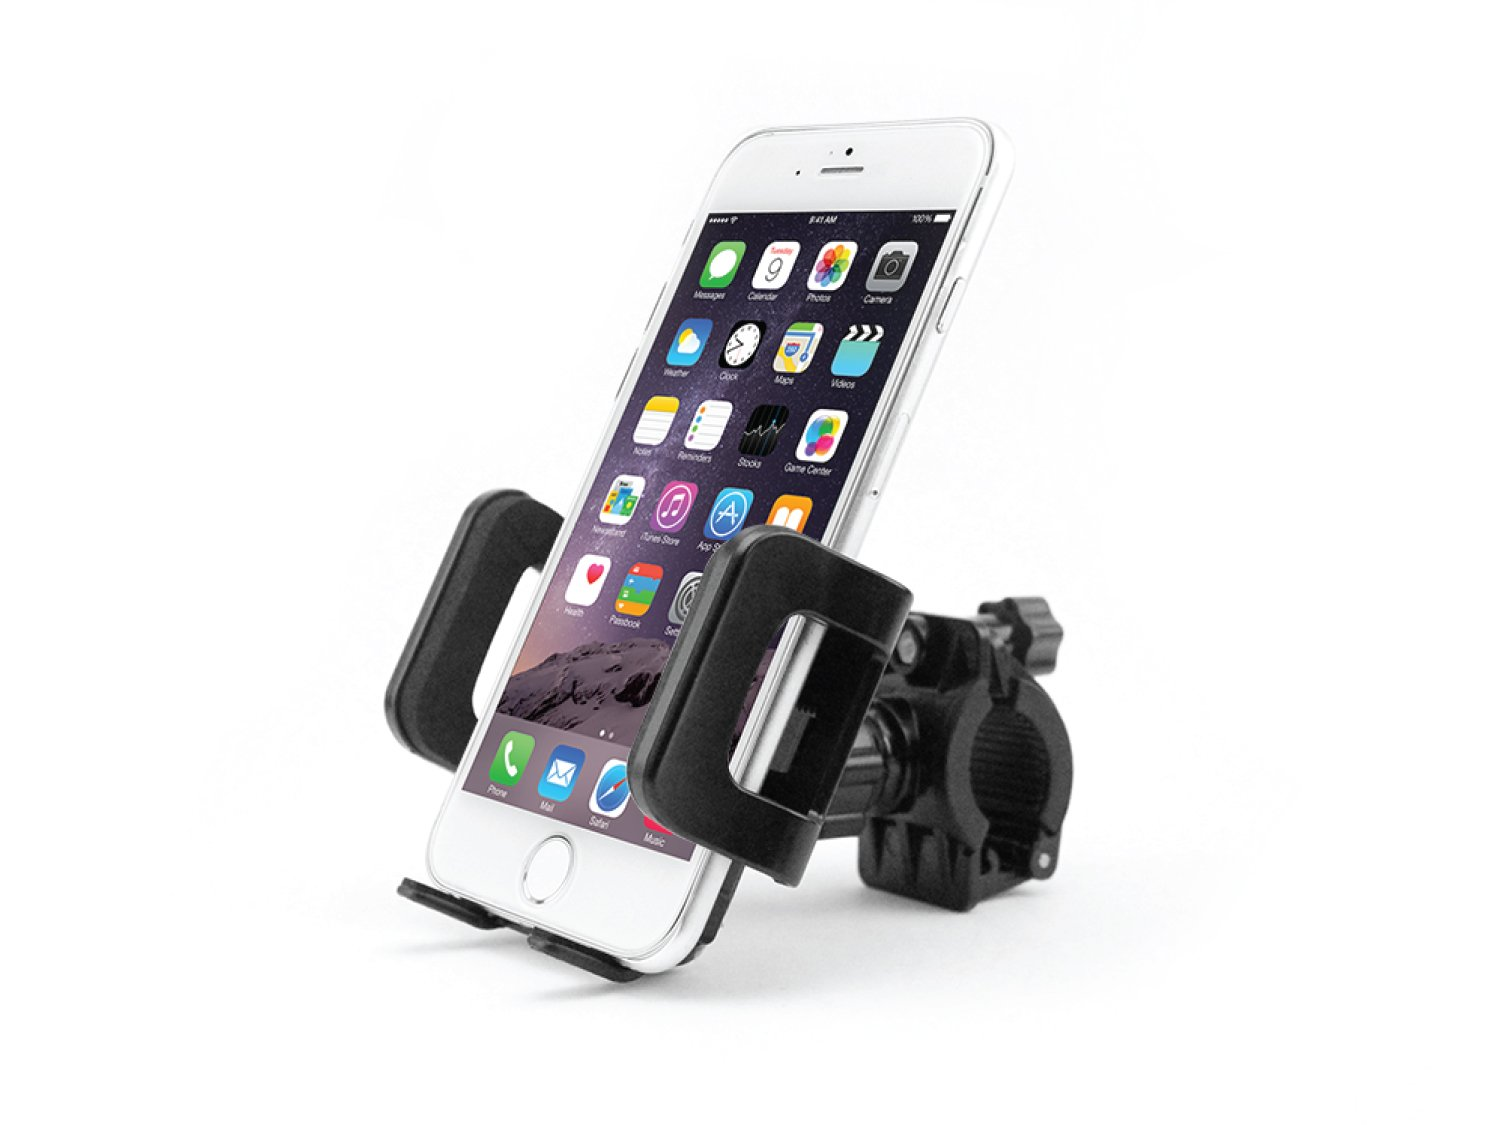 5//5s//5c Galaxy S8//S8 Plus Note 8 7//7 Plus by Cellet PHM400 Fits Most Phones Up to 3.5 Inches Wide Including iPhone X//8//8 Plus and Many More S7 // S7 Edge Smartphone Bicycle and Motorcycle Mount